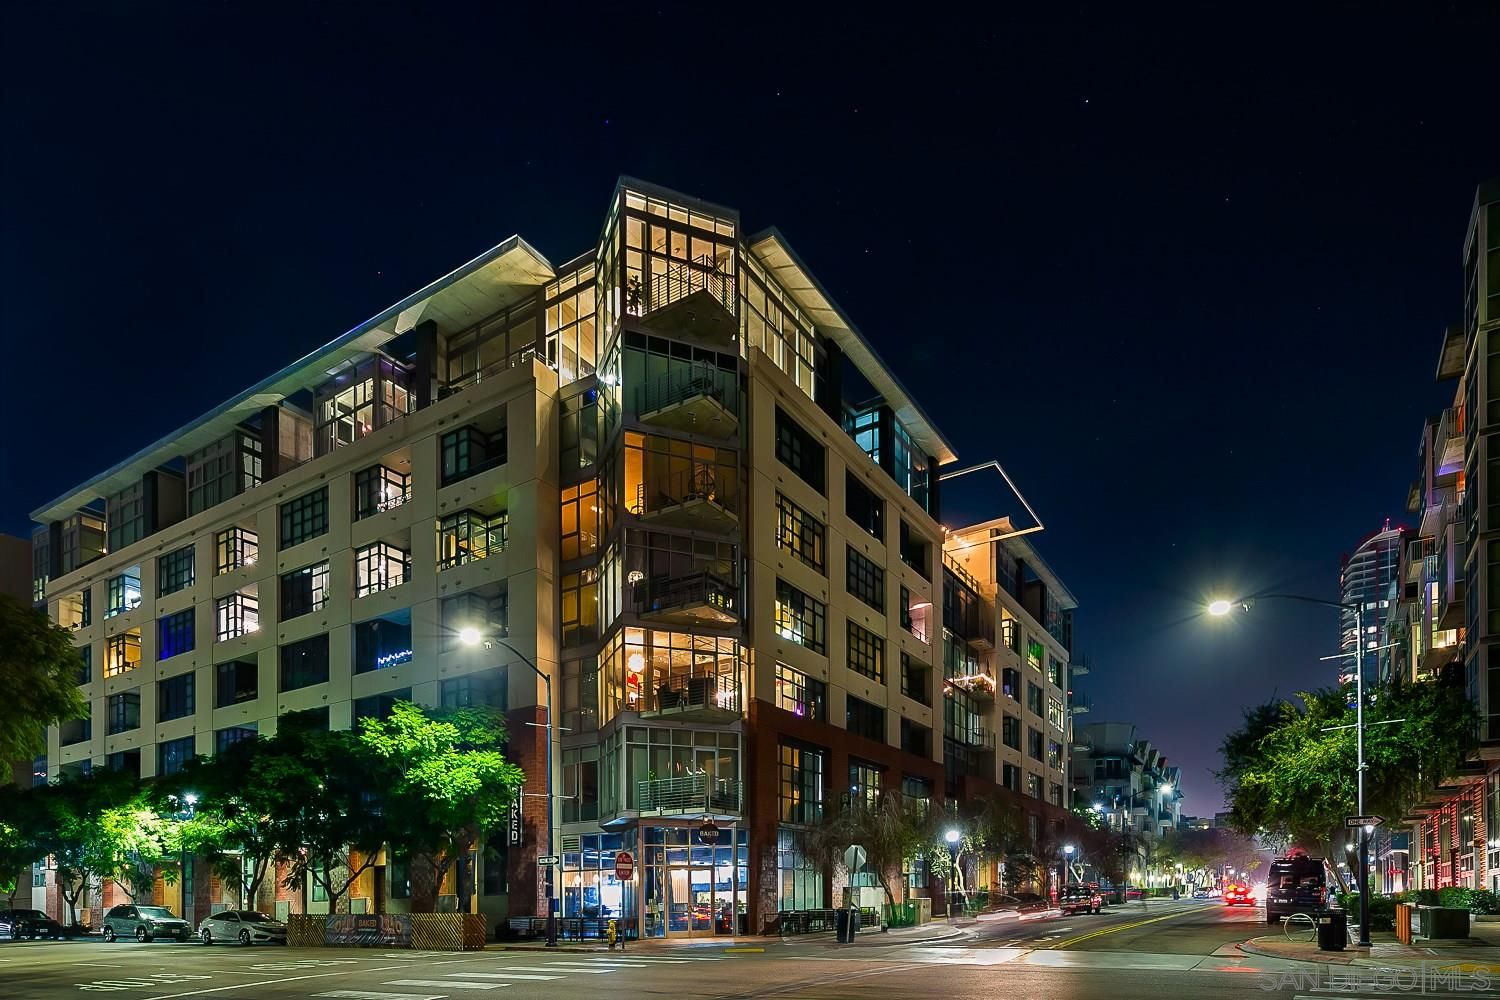 Main Photo: Condo for sale : 2 bedrooms : 1050 Island ave #707 in san diego